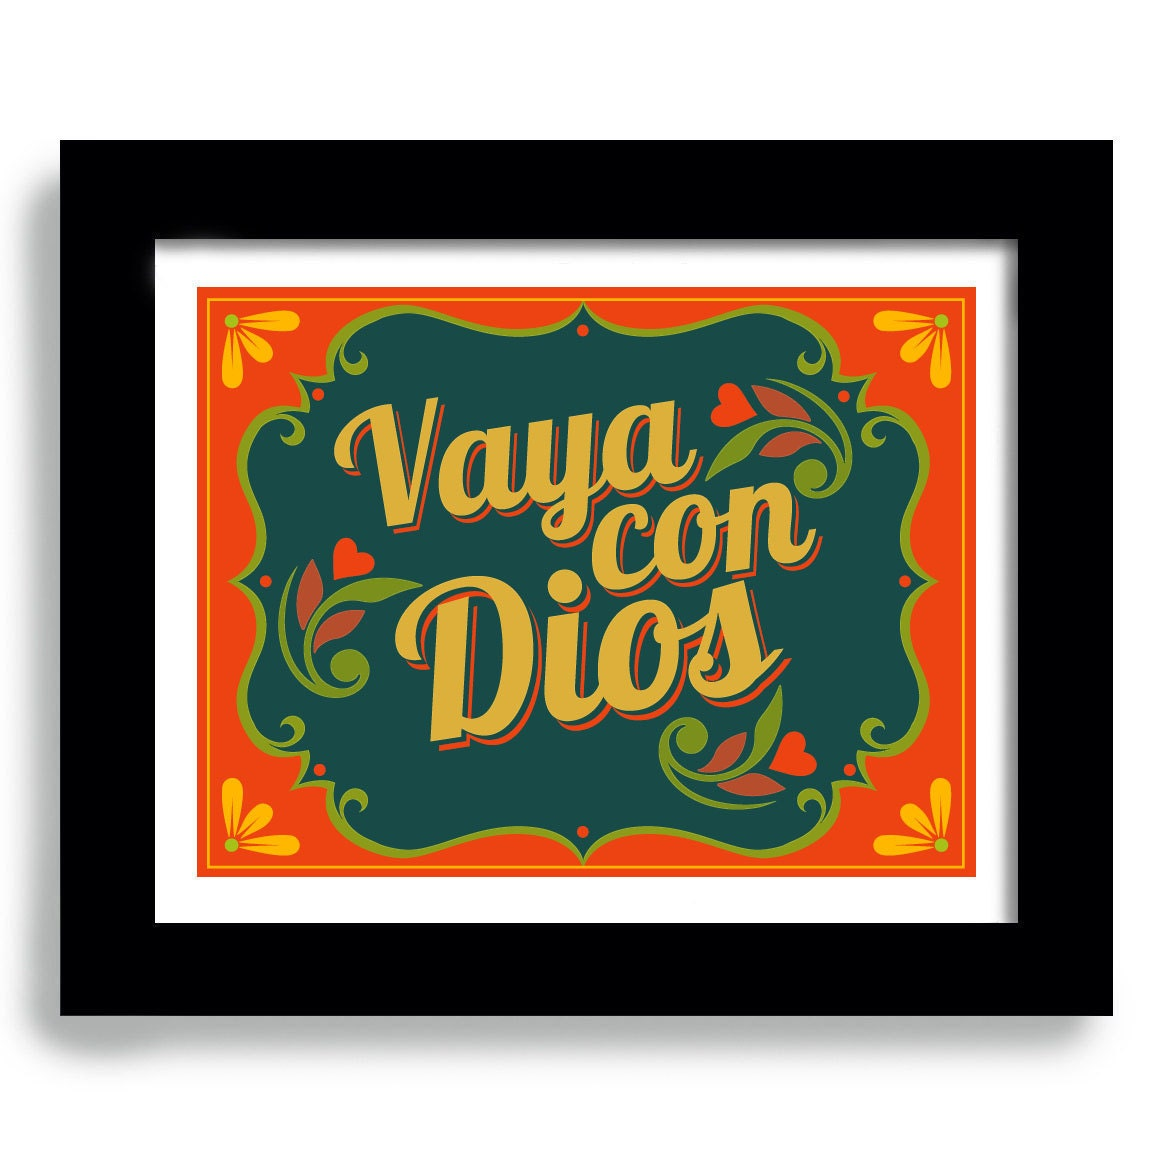 Kitchen Signs In Spanish: Items Similar To Mexican Kitchen, Spanish Home Decor, Art Print Decor, Vaya Con Dios On Etsy